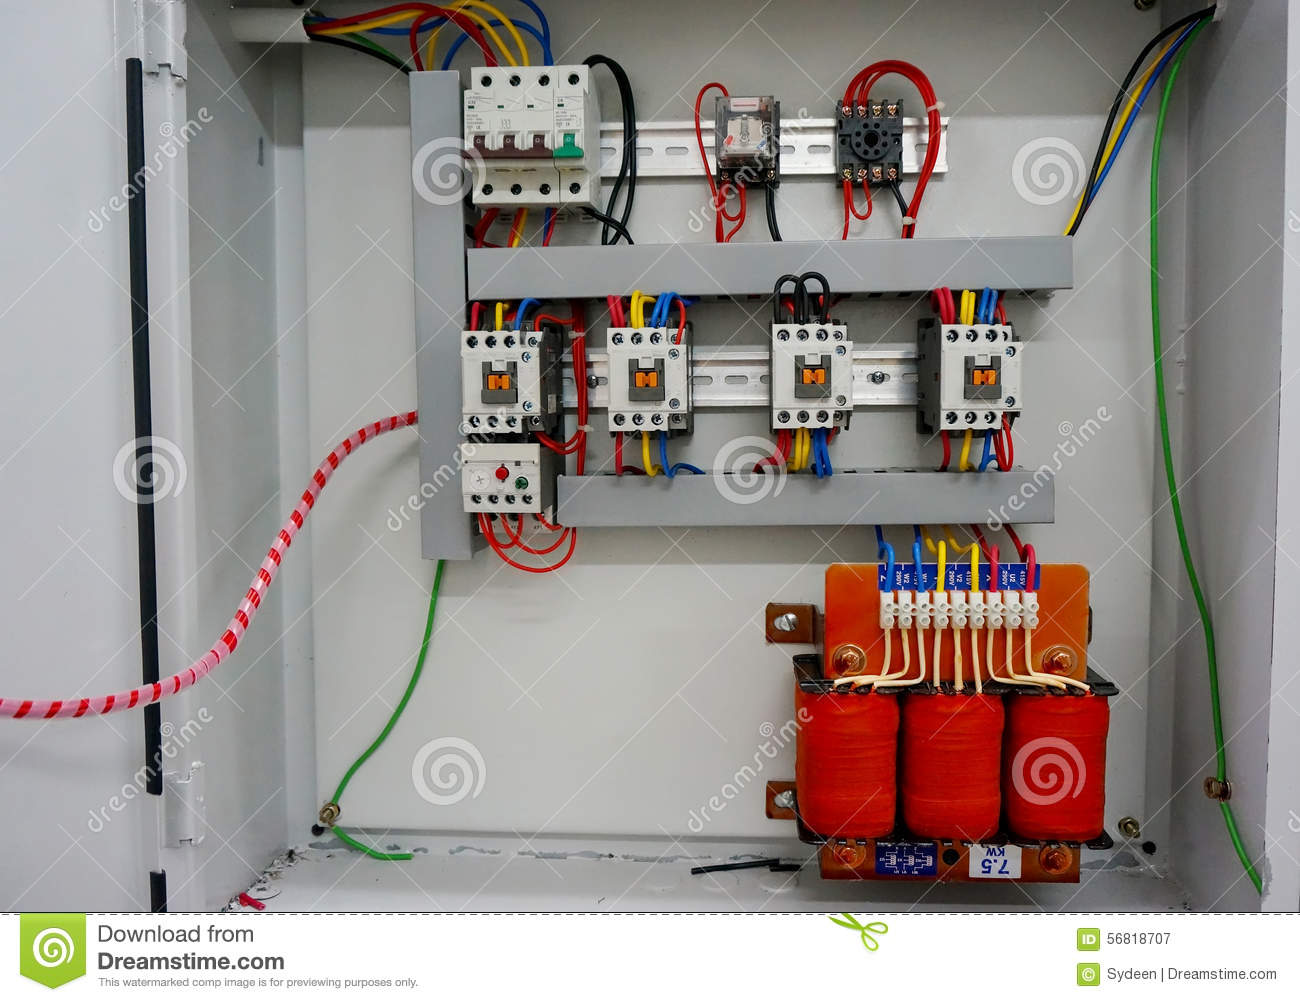 526504 Radiator Fan Electrical Connector likewise 443991 84 911 Starter Wiring Help together with MCC Electrical Training together with Battery Master Switch Wiring Diagram besides Symbols Of Motor Starters. on motor starter wiring diagram